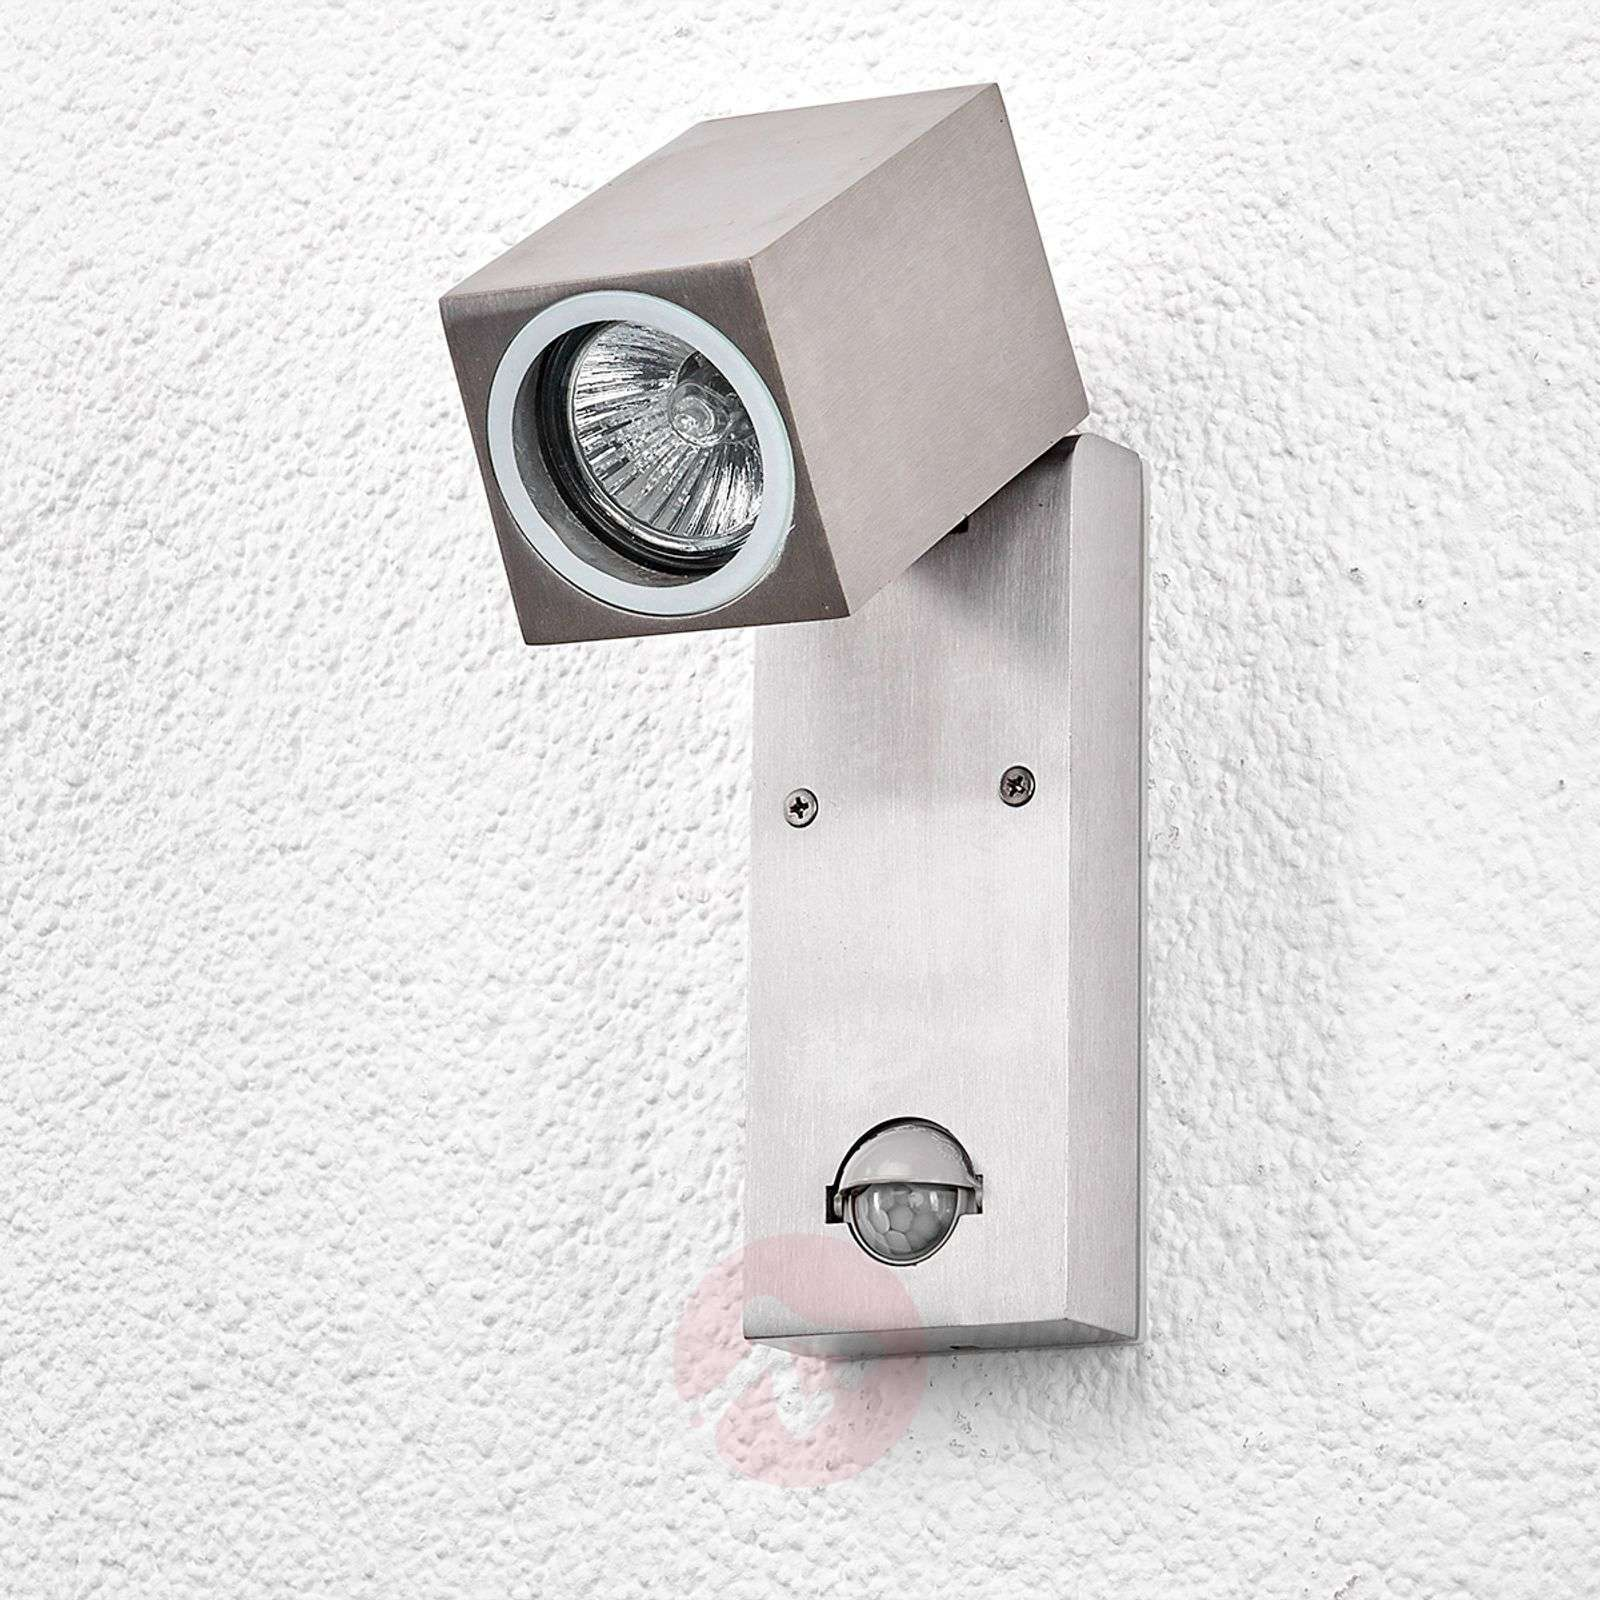 Loris Outdoor Wall Light With Motion Sensor